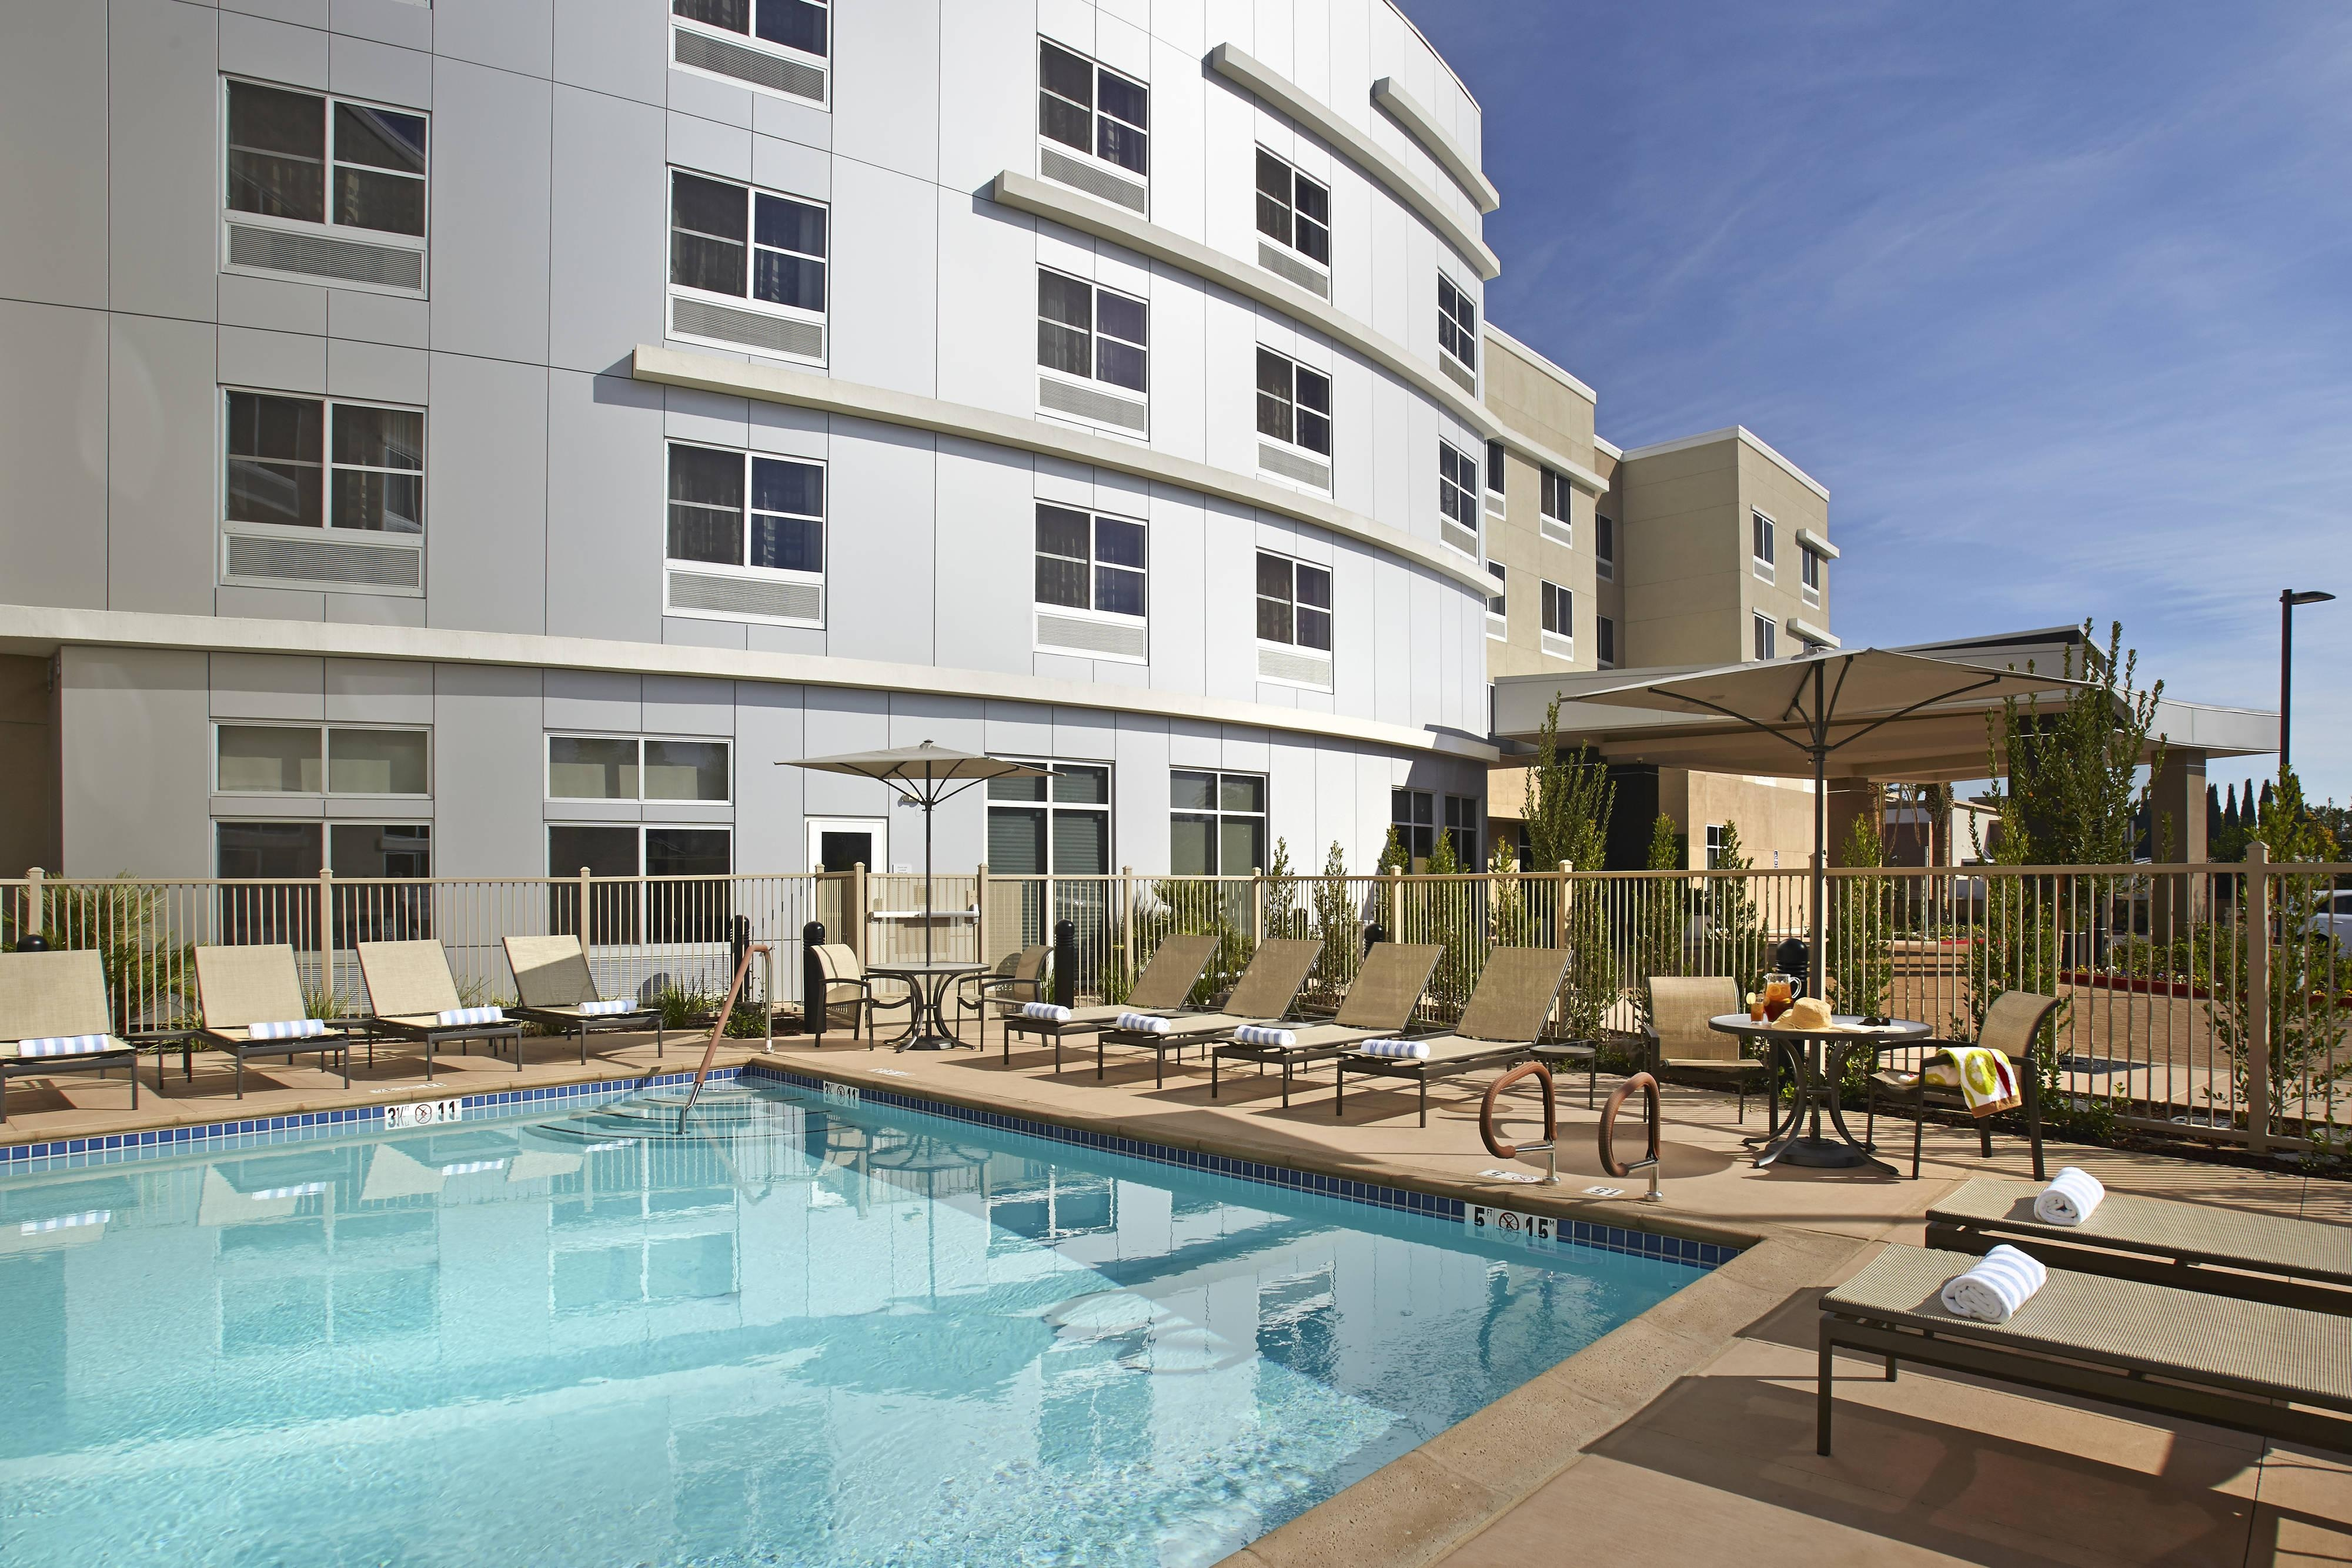 Sunnyvale Hotel Mountain View CA